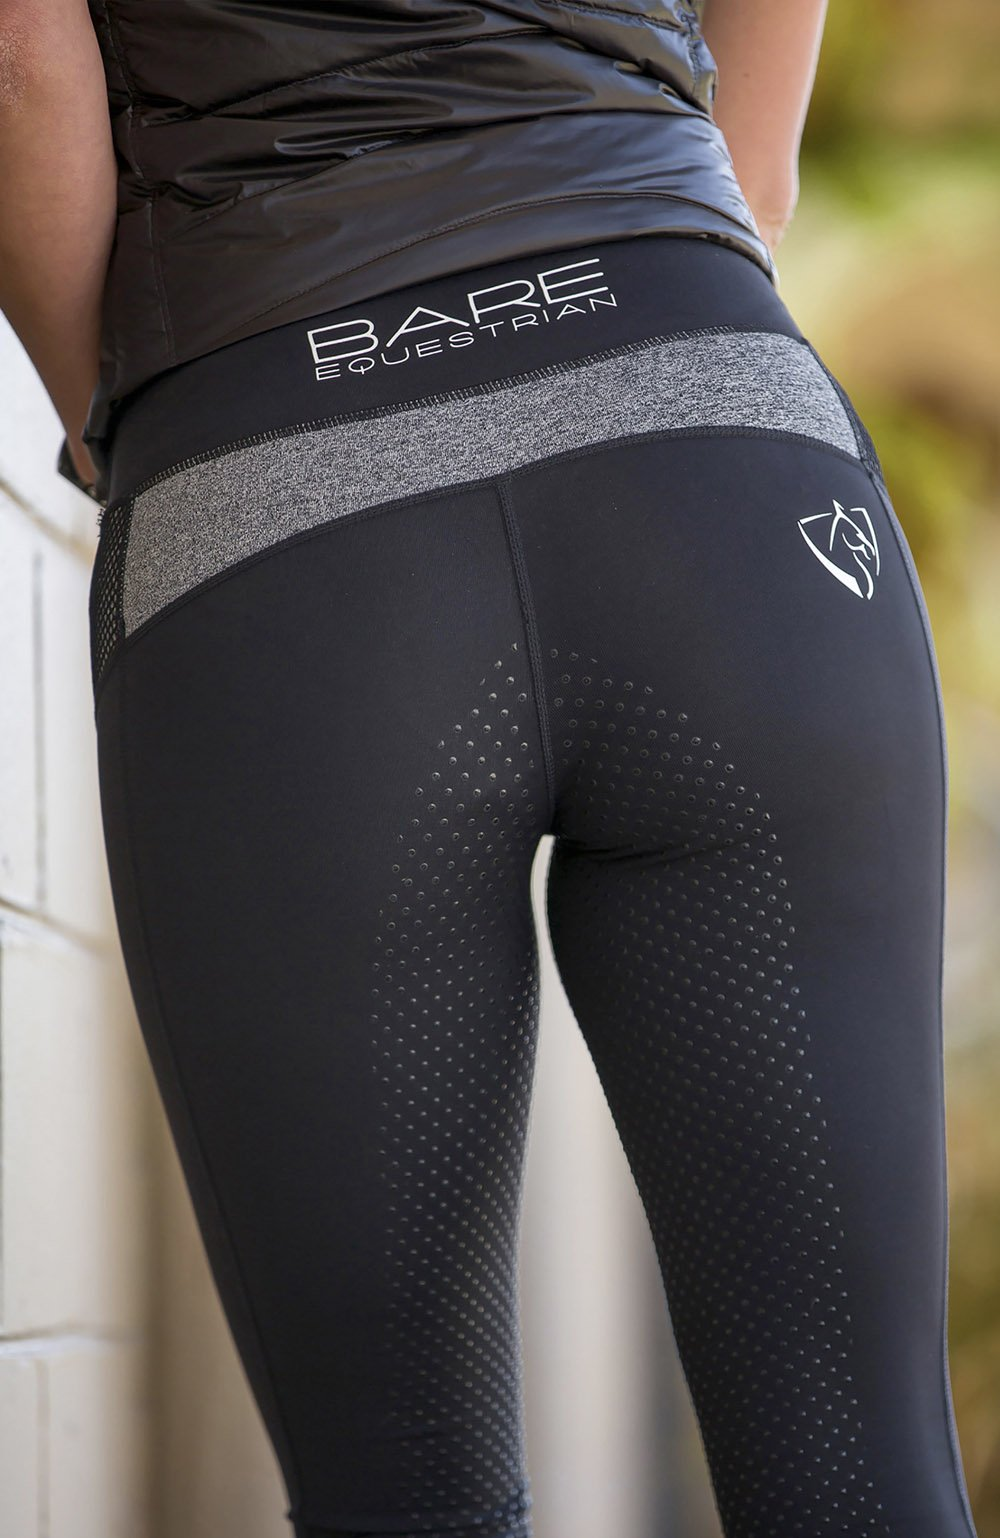 Bare Equestrian Performance Tights - Stormy Rider